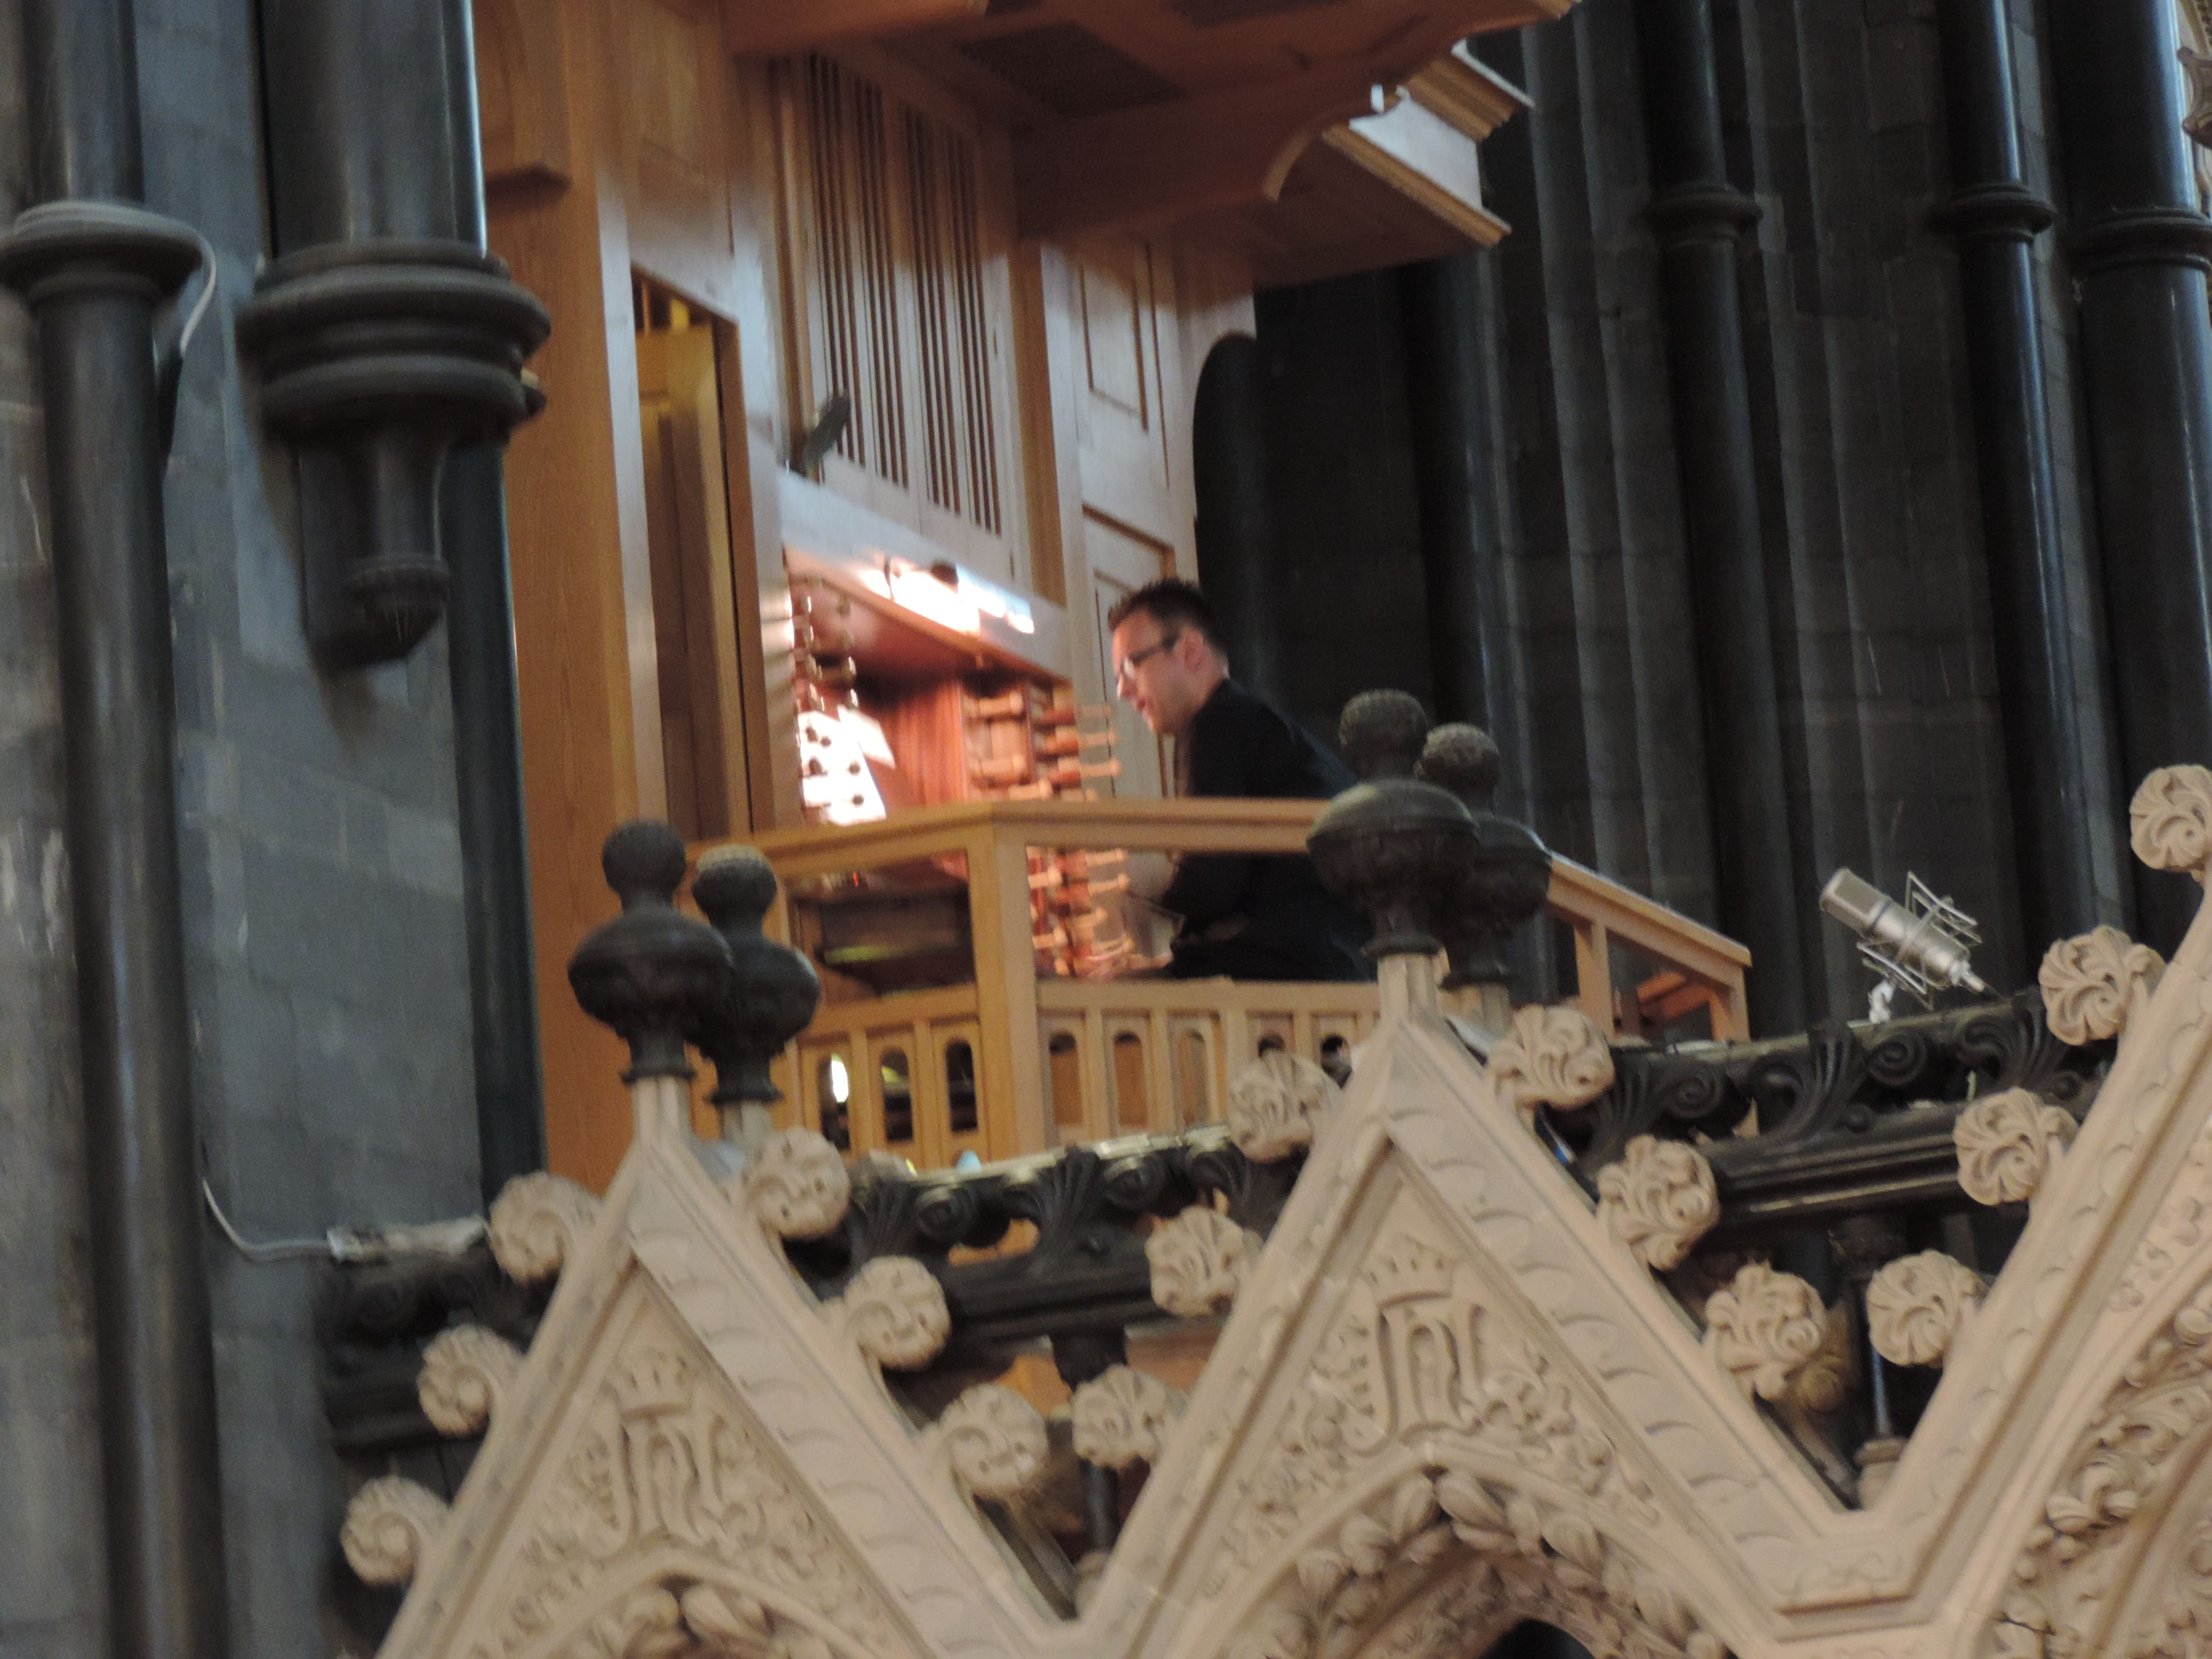 James Gough, organist Christchurch Cathedral